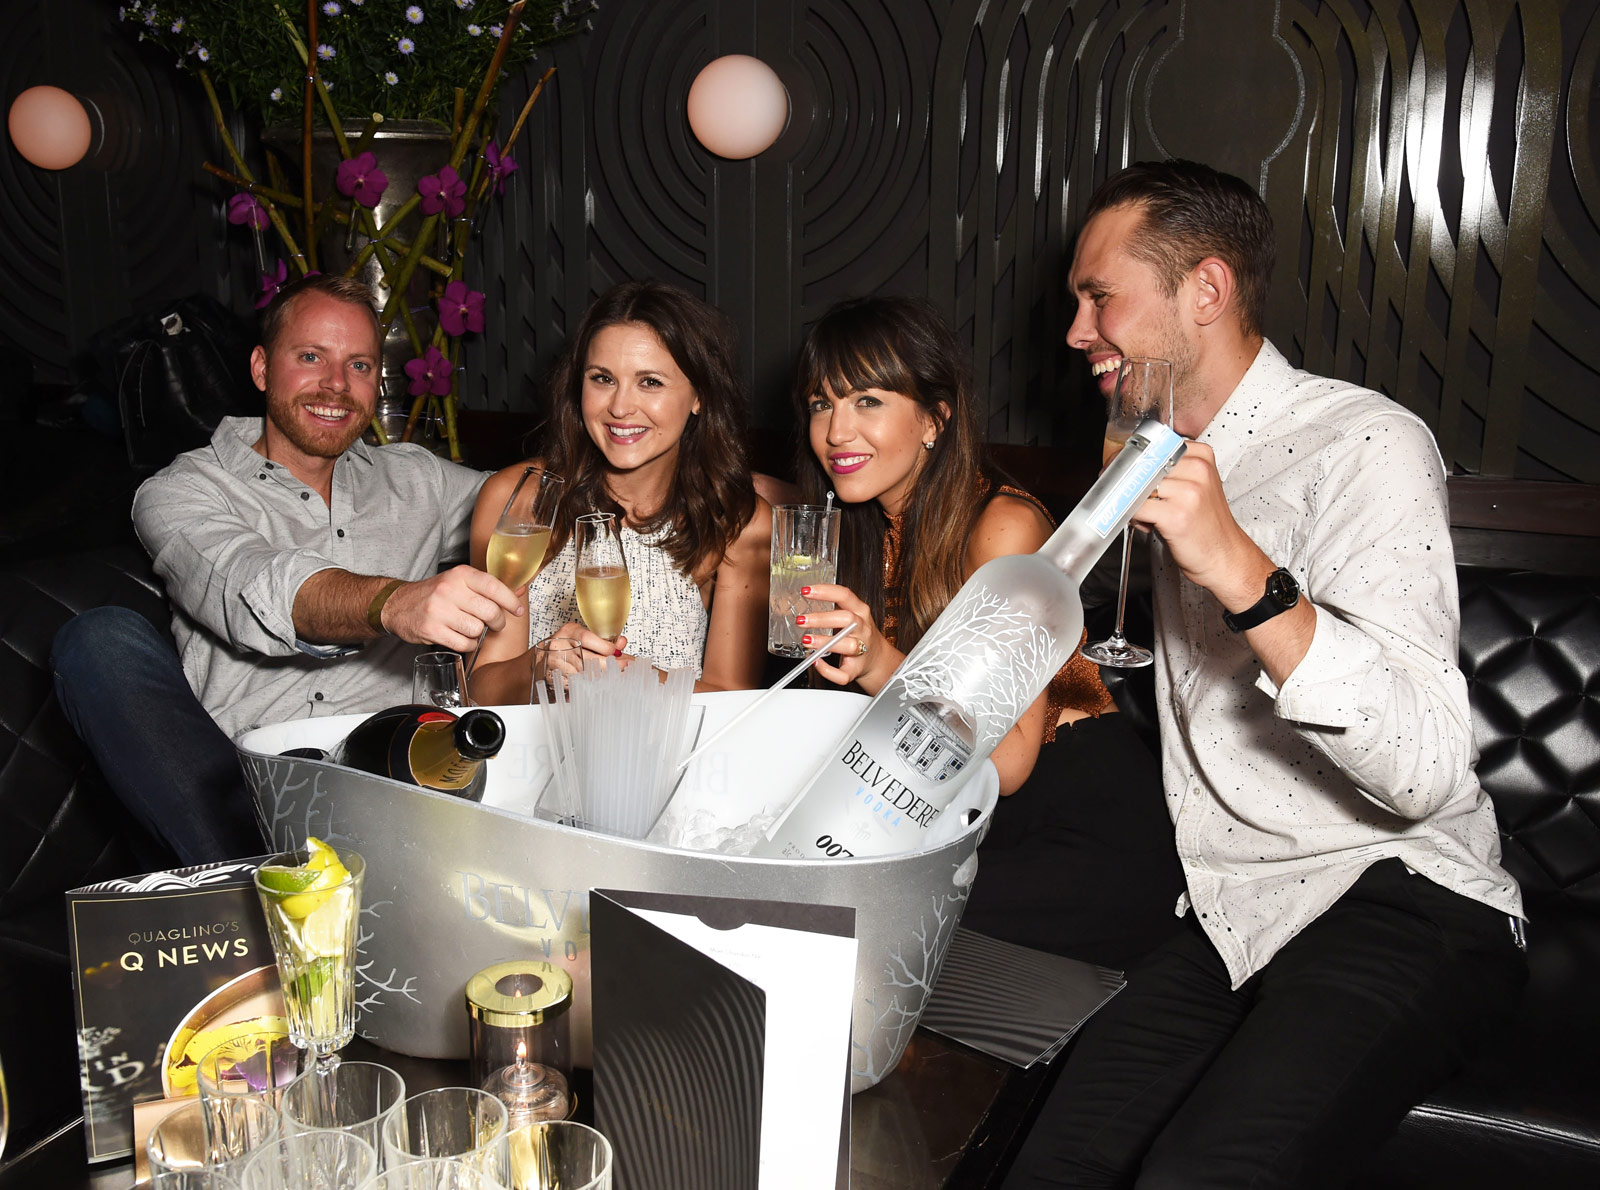 Mayfair's Quaglino's Launches Q Nights - Friday's Place to Be